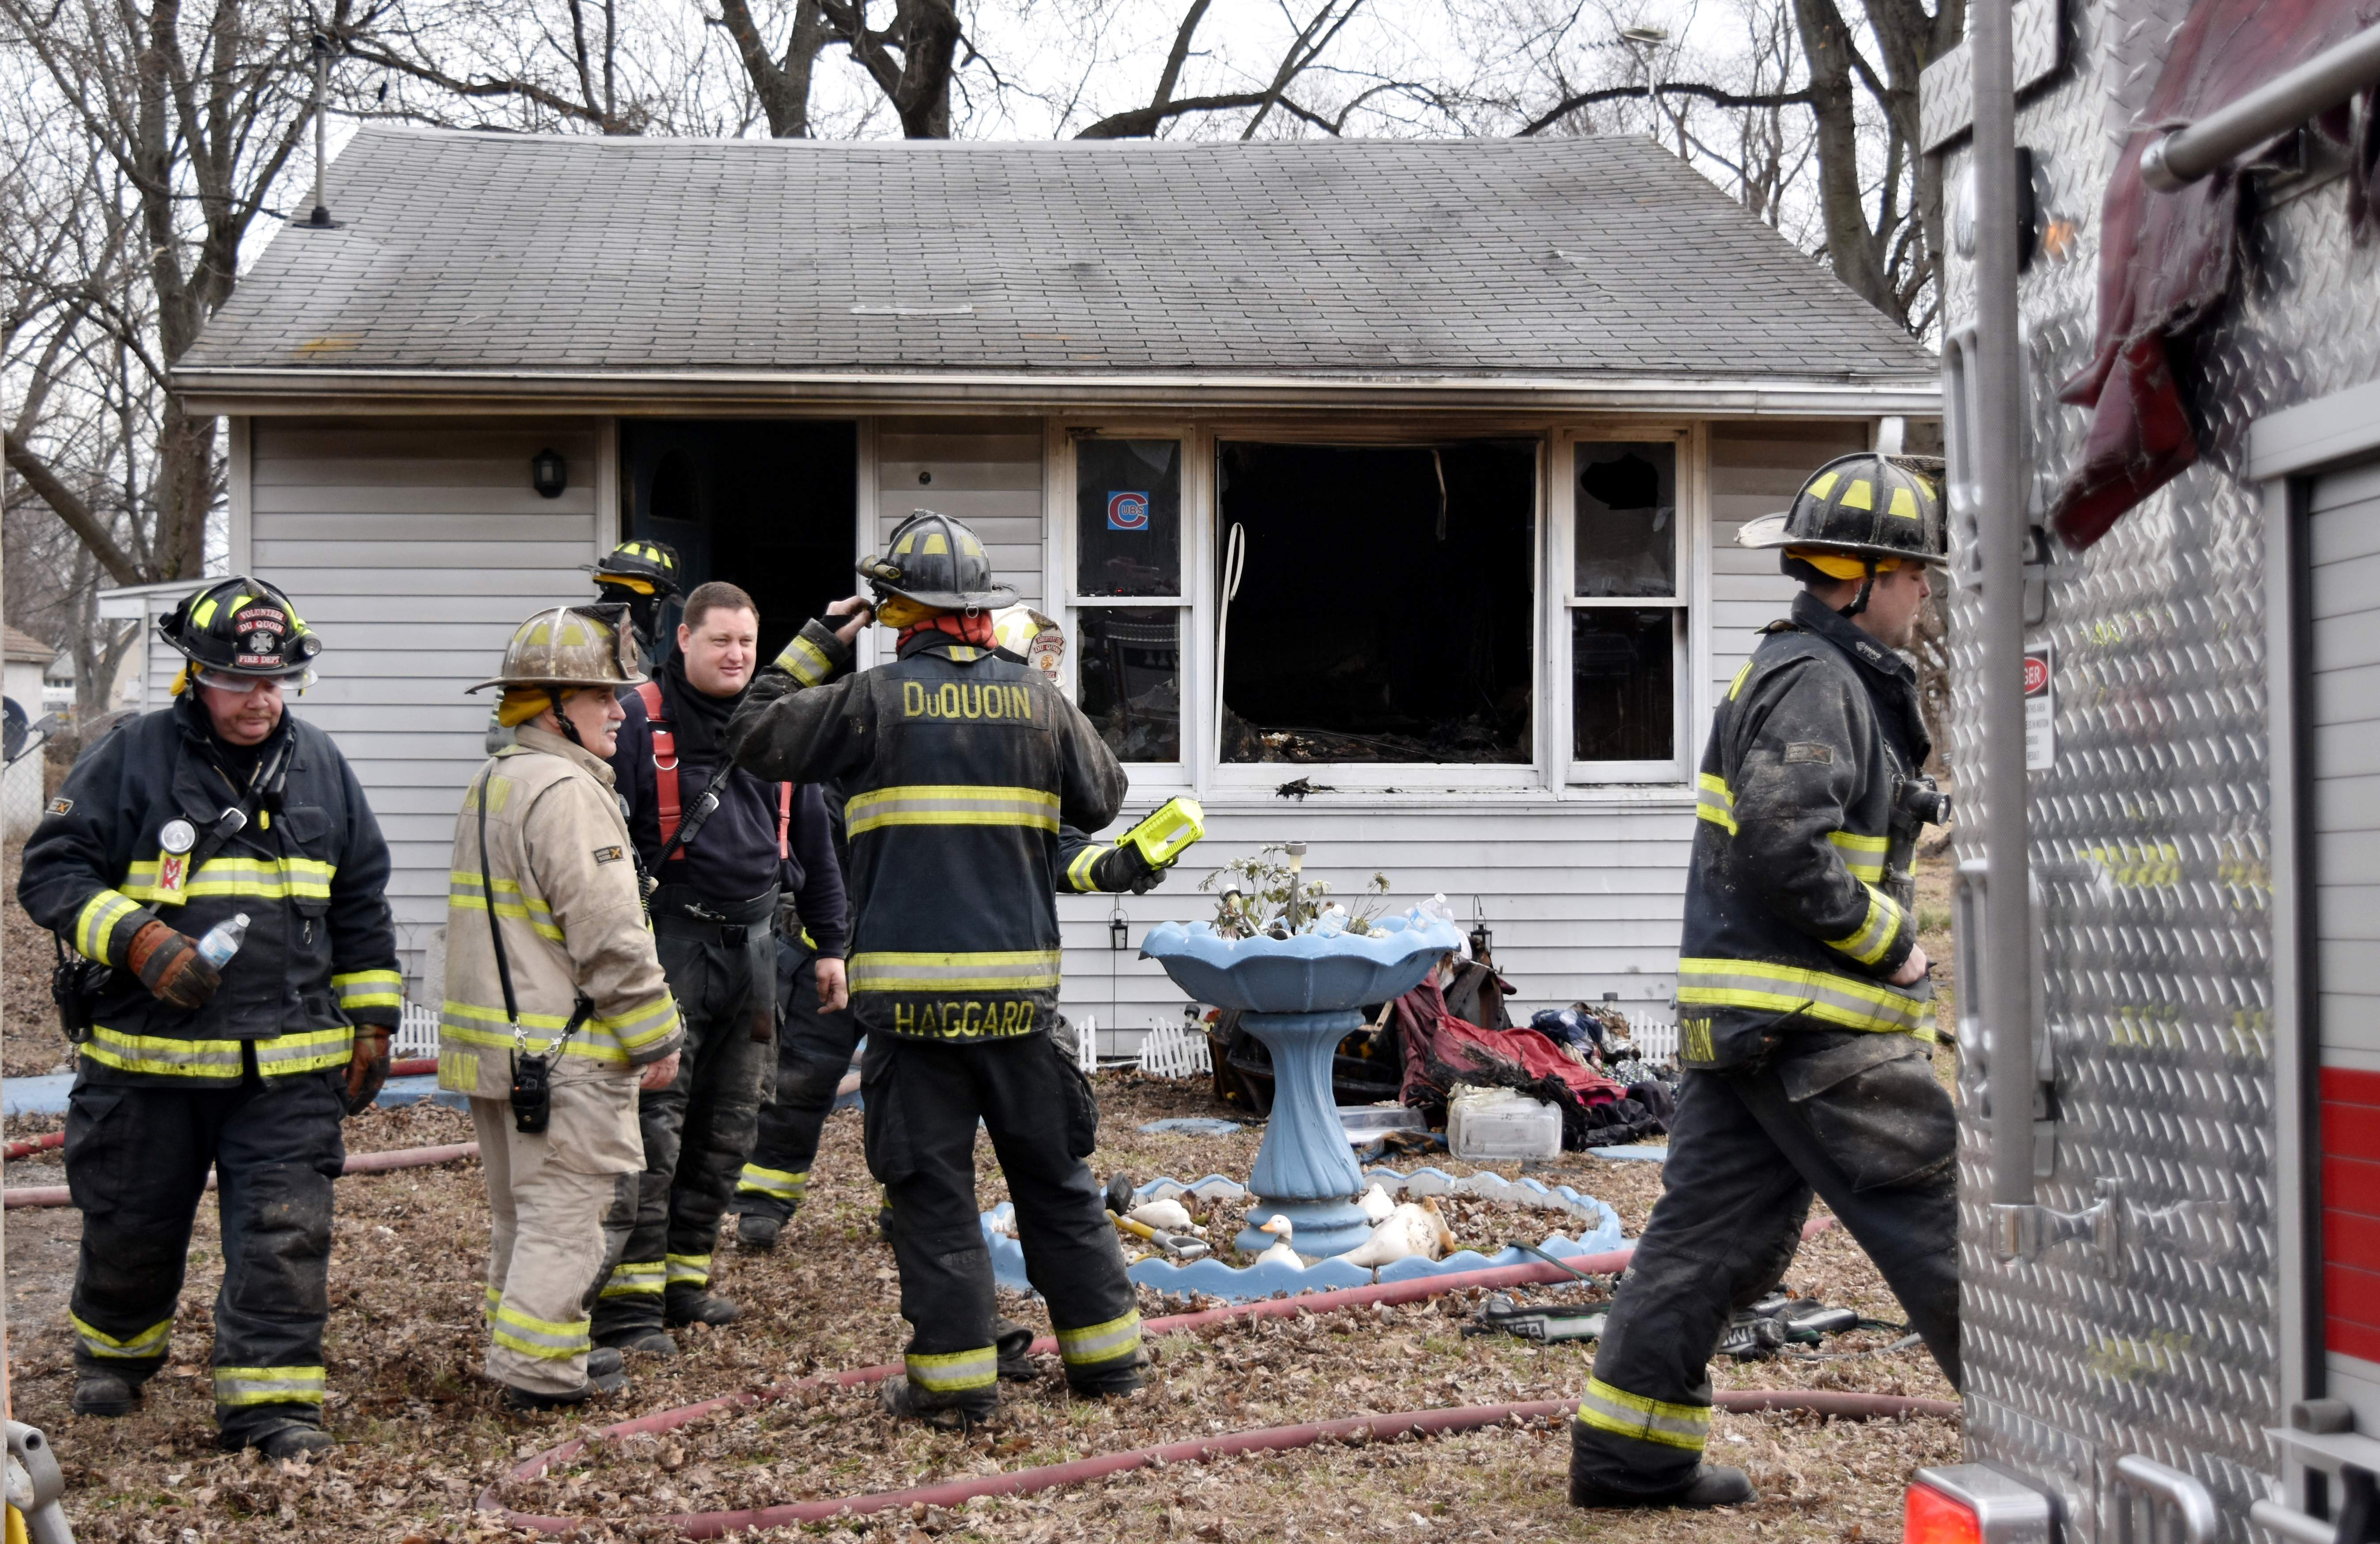 Firefighters prepare to clear the scene from a house fire on Linden Street on Friday.